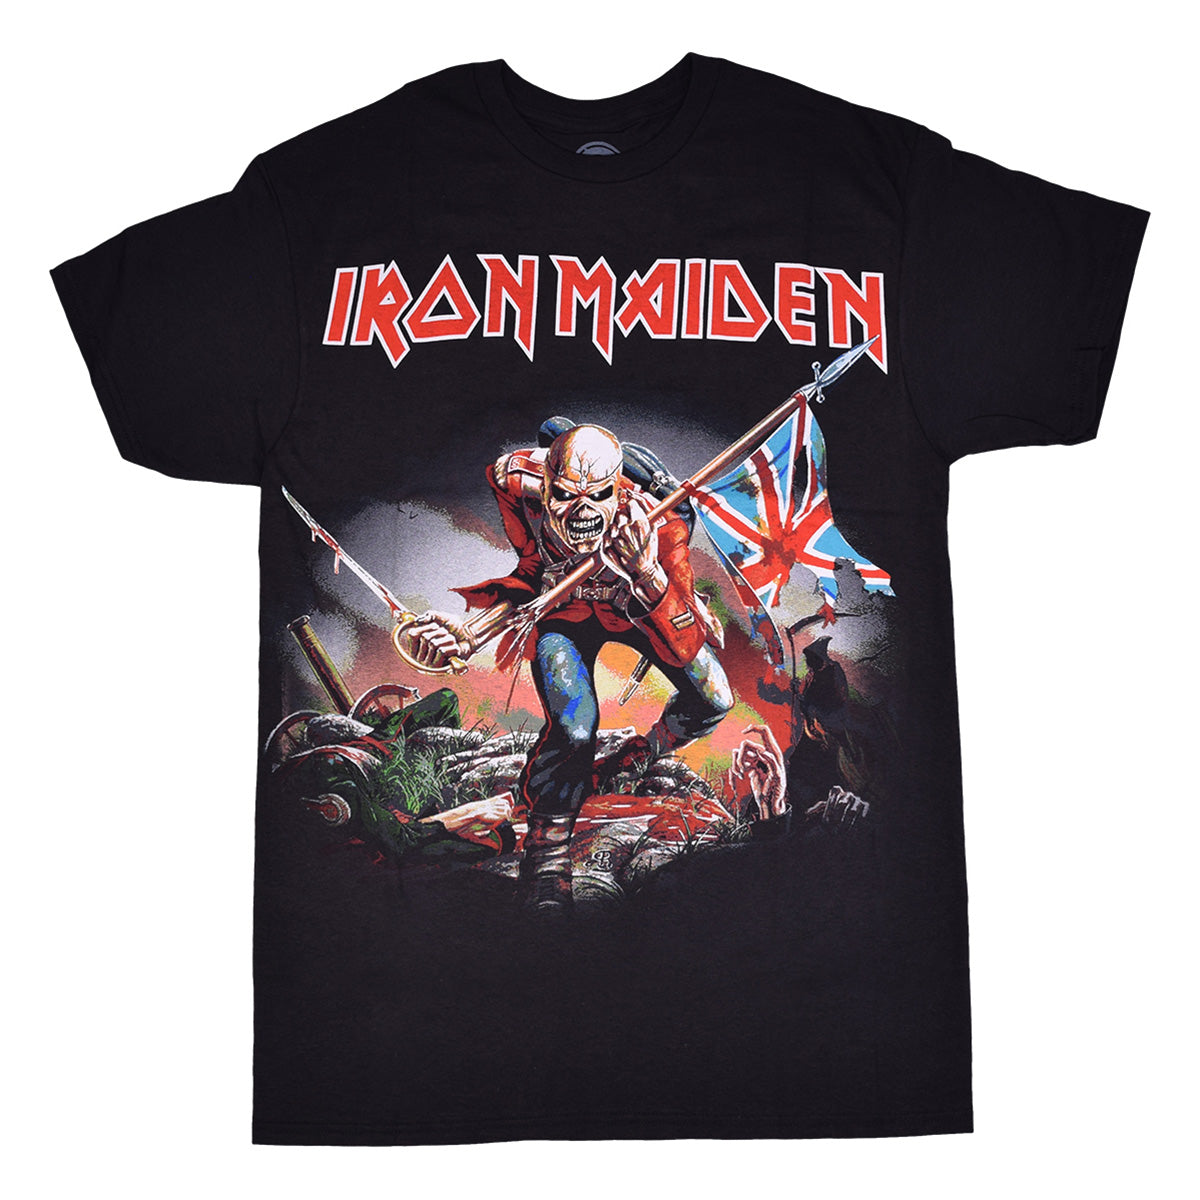 Iron Maiden: The Trooper Shirt - Black